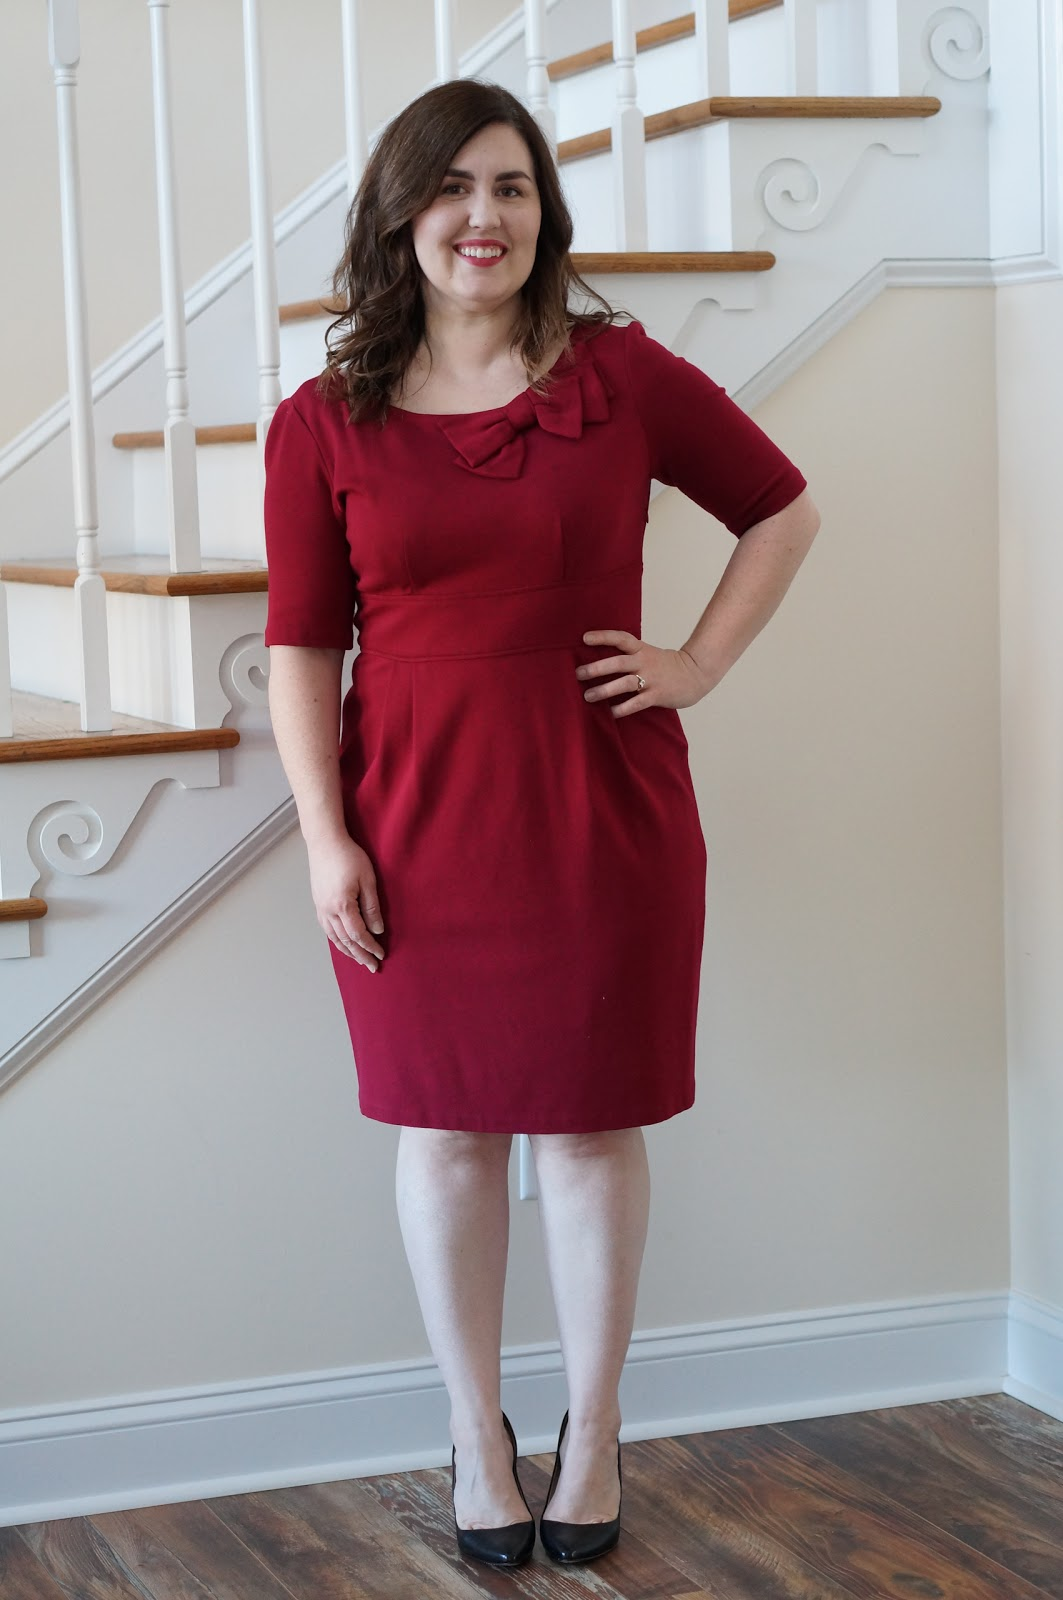 VALENTINES DAY DATE by popular North Carolina lifestyle blogger Rebecca Lately